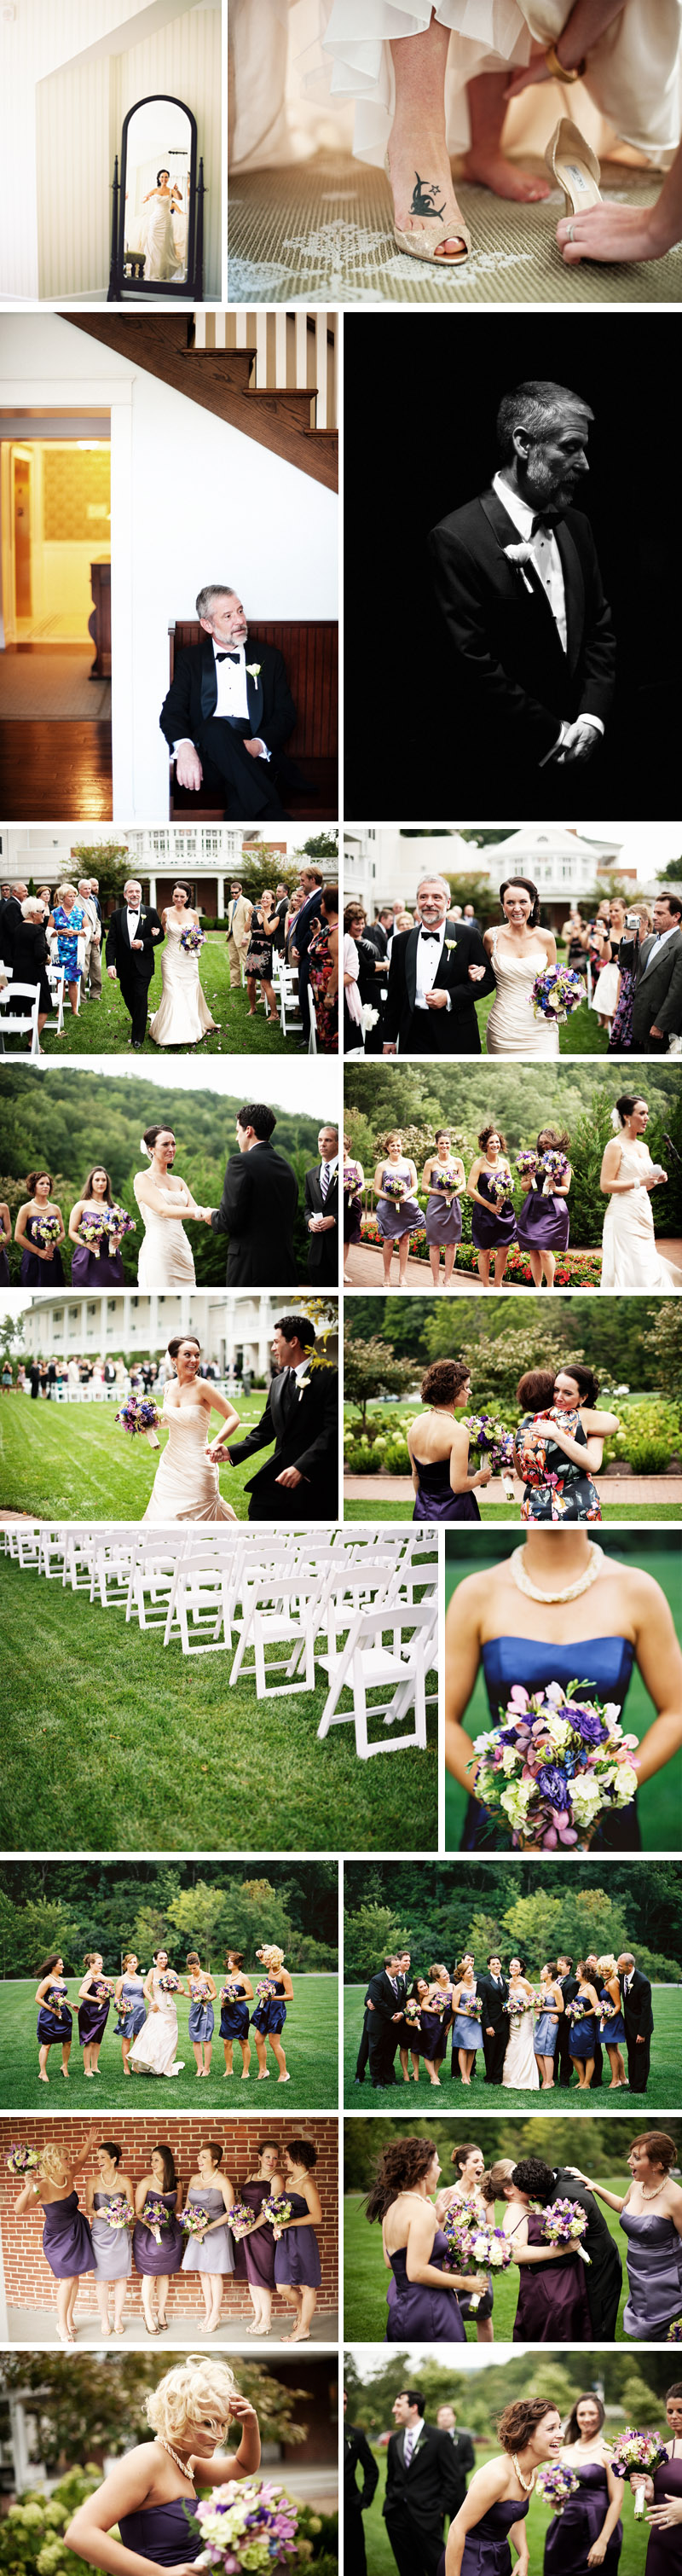 bedford springs resort wedding by ash imagery